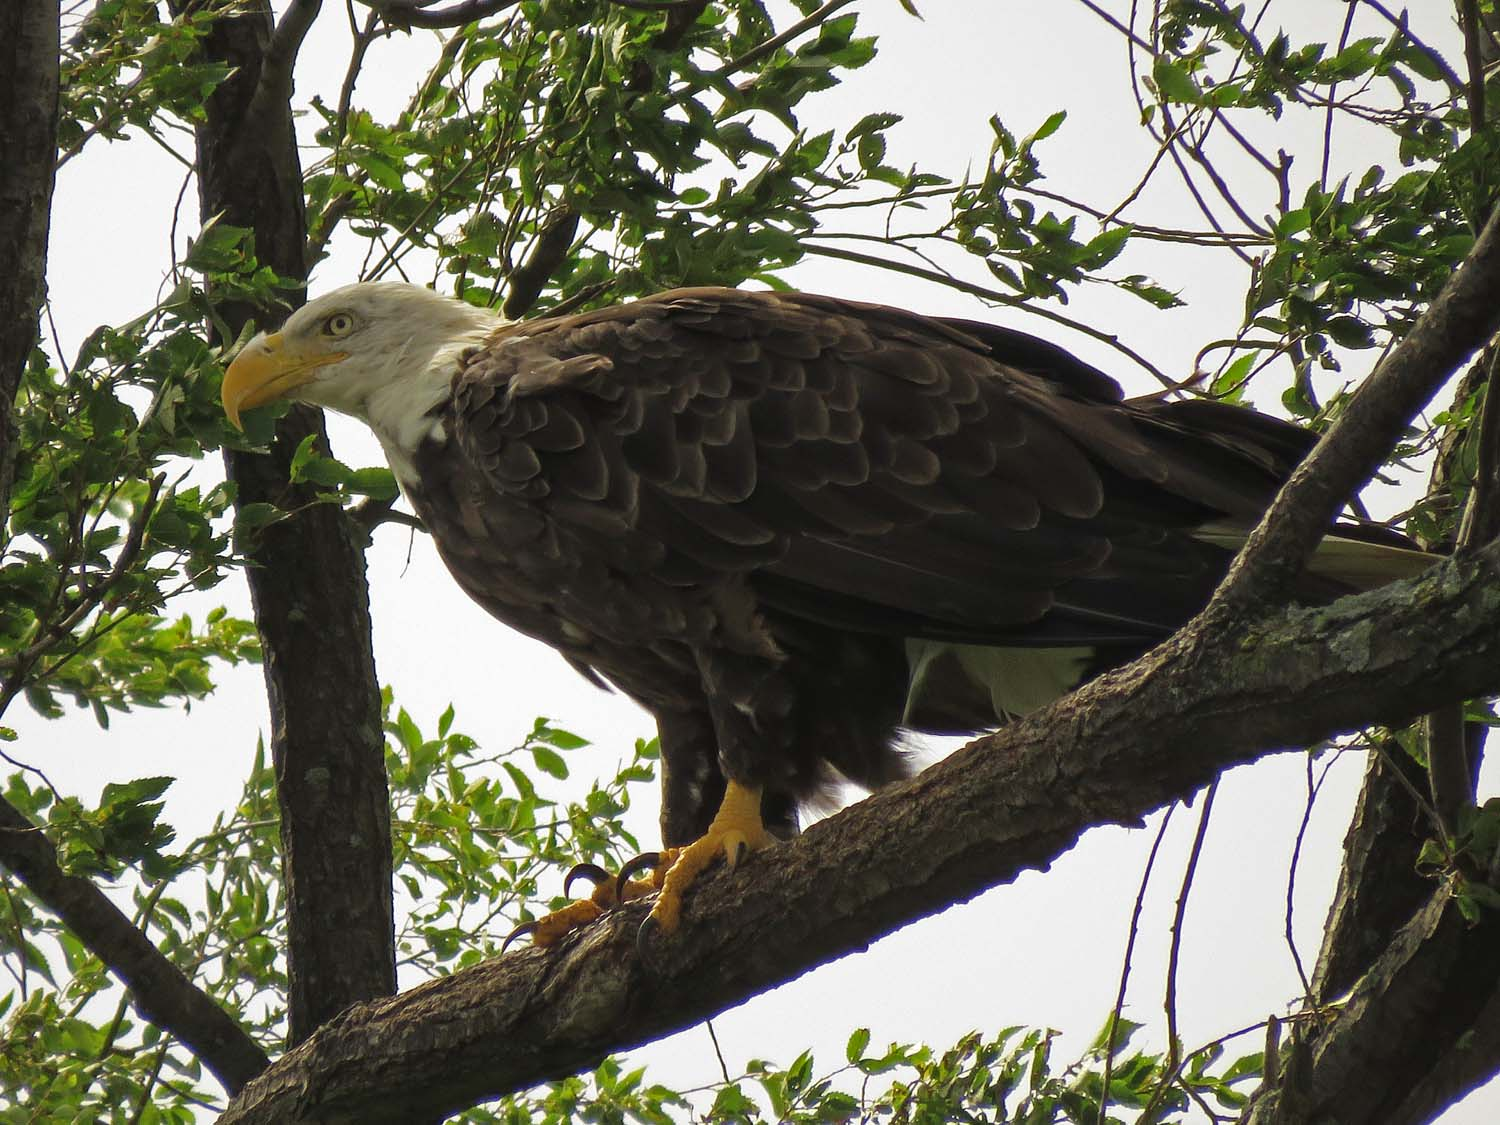 An adult bald eagle, probably the mother, Mount Loretto Unique Area, Staten Island, August 2, 2018. This photo is dedicated to Dr. Coco Lazaroff.